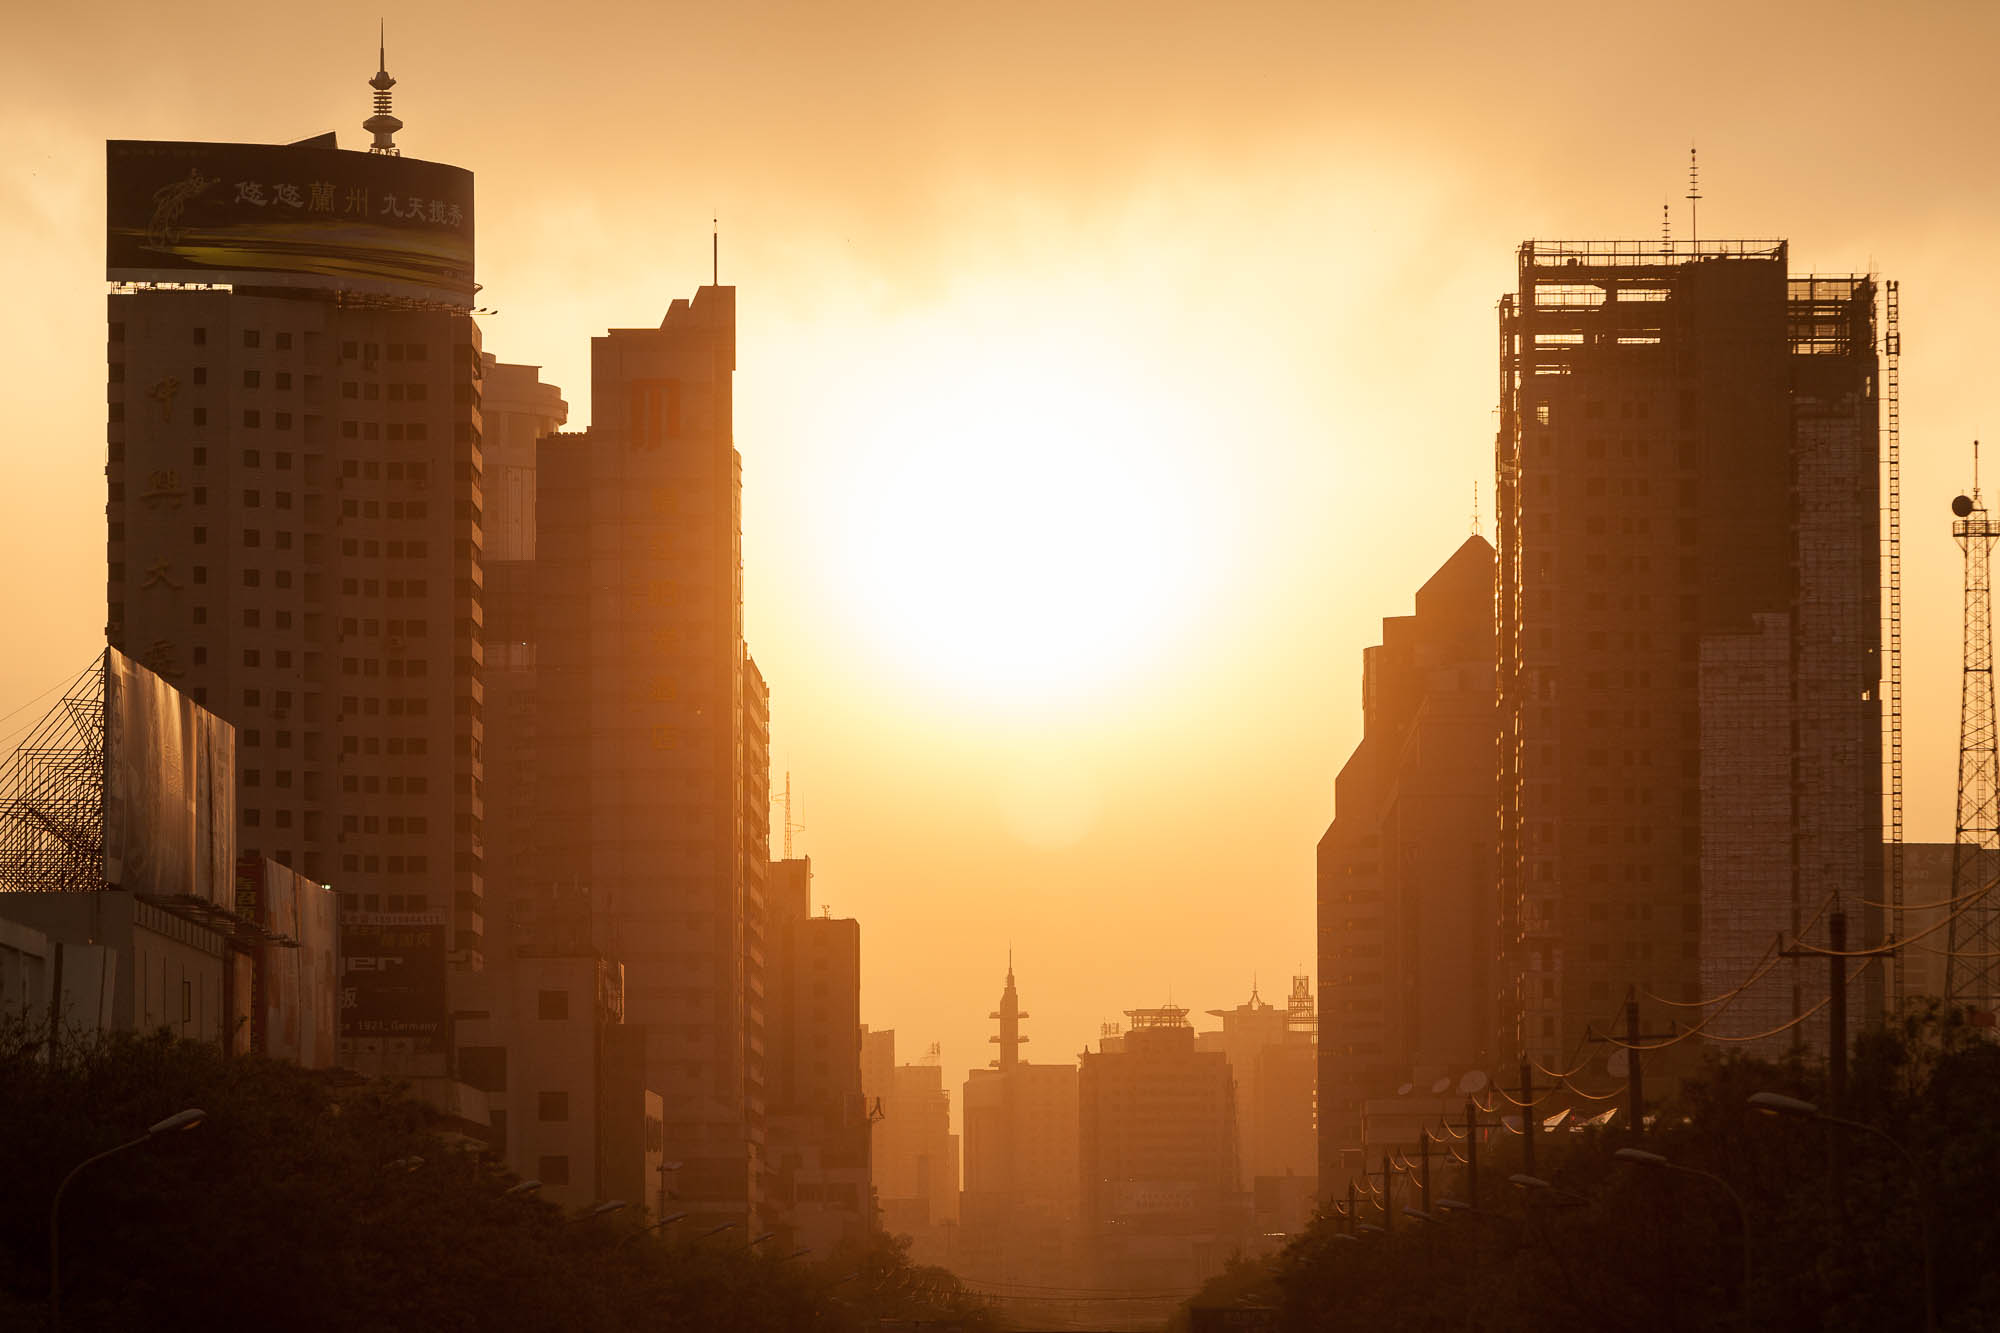 sunset in Lanzhou